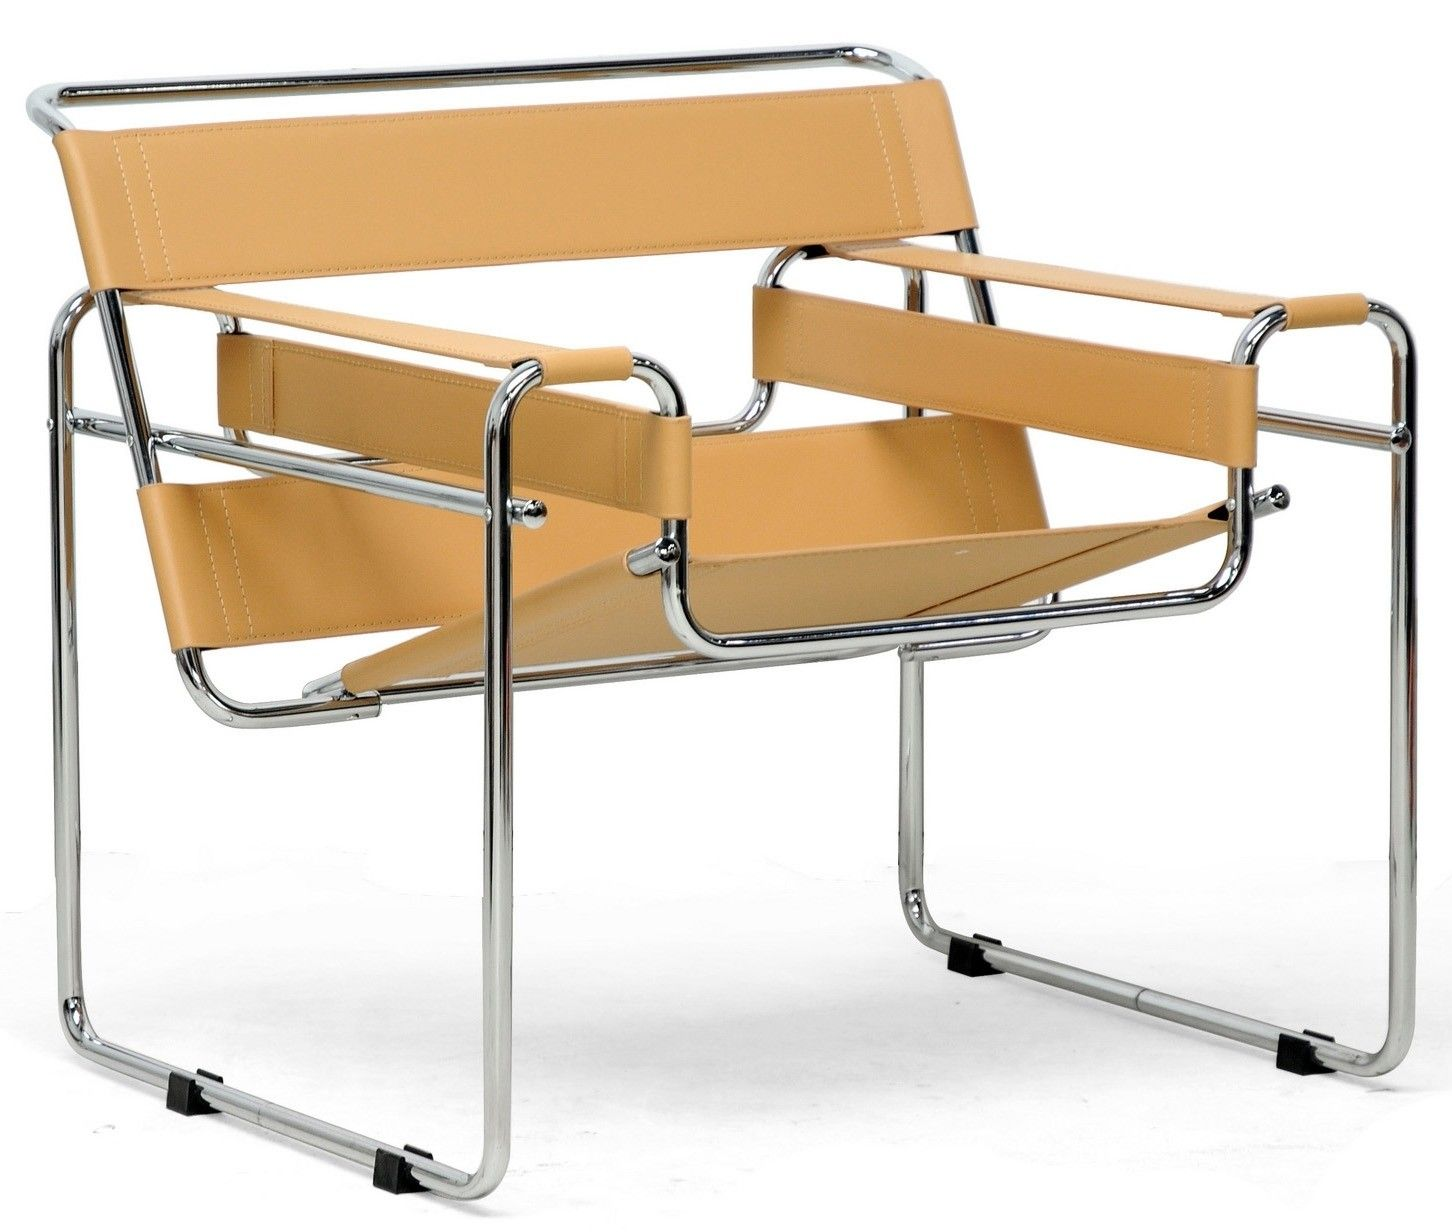 Highshine steel tubing paired with bonded leather gives